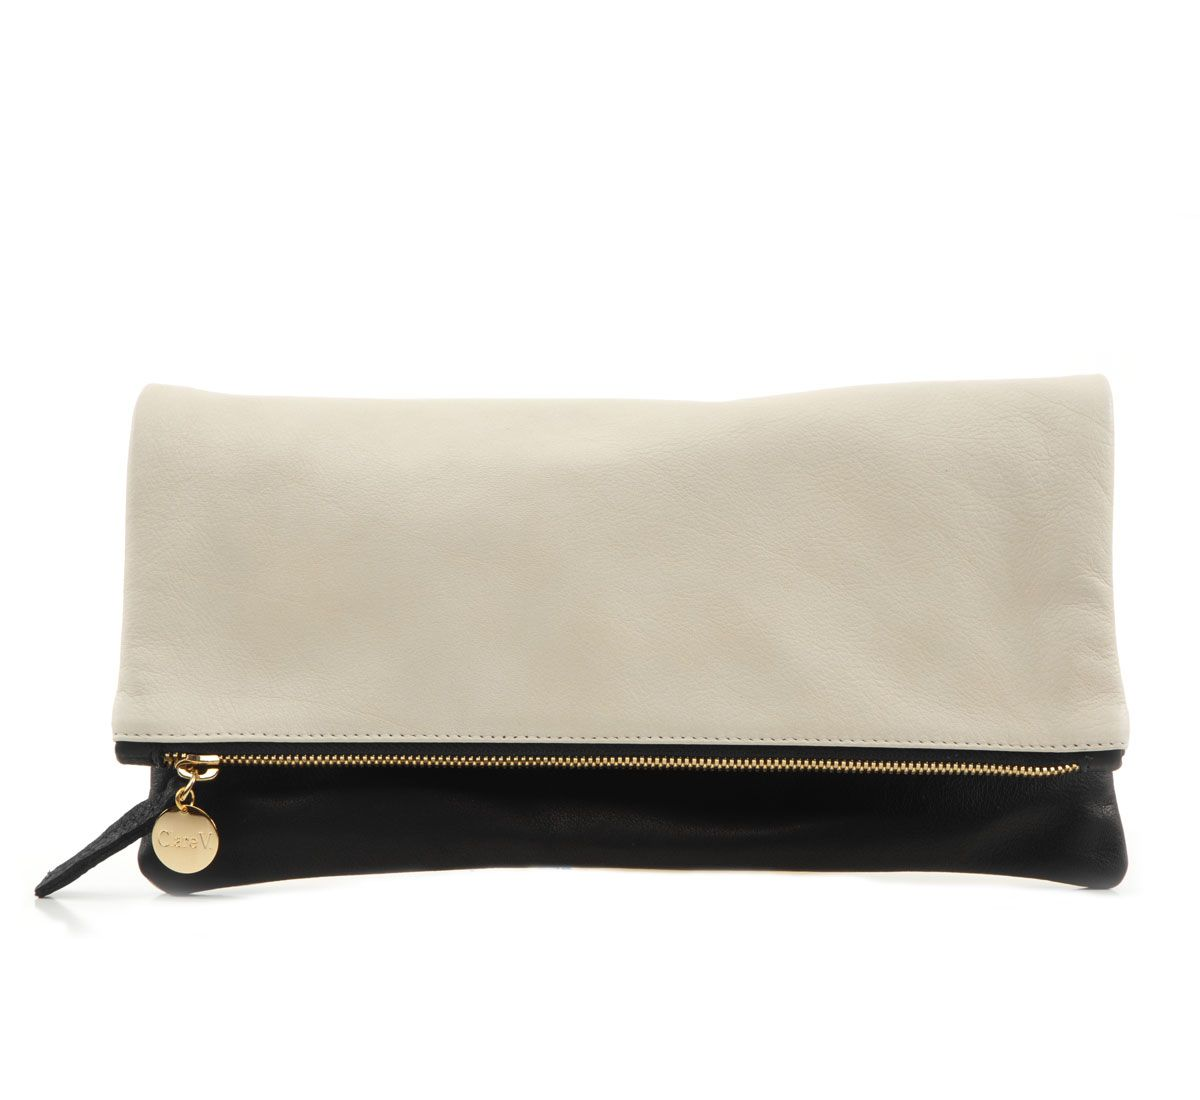 Black Velvet And Cream Milano Foldover Clutch By Clare V Just In At Roztayger